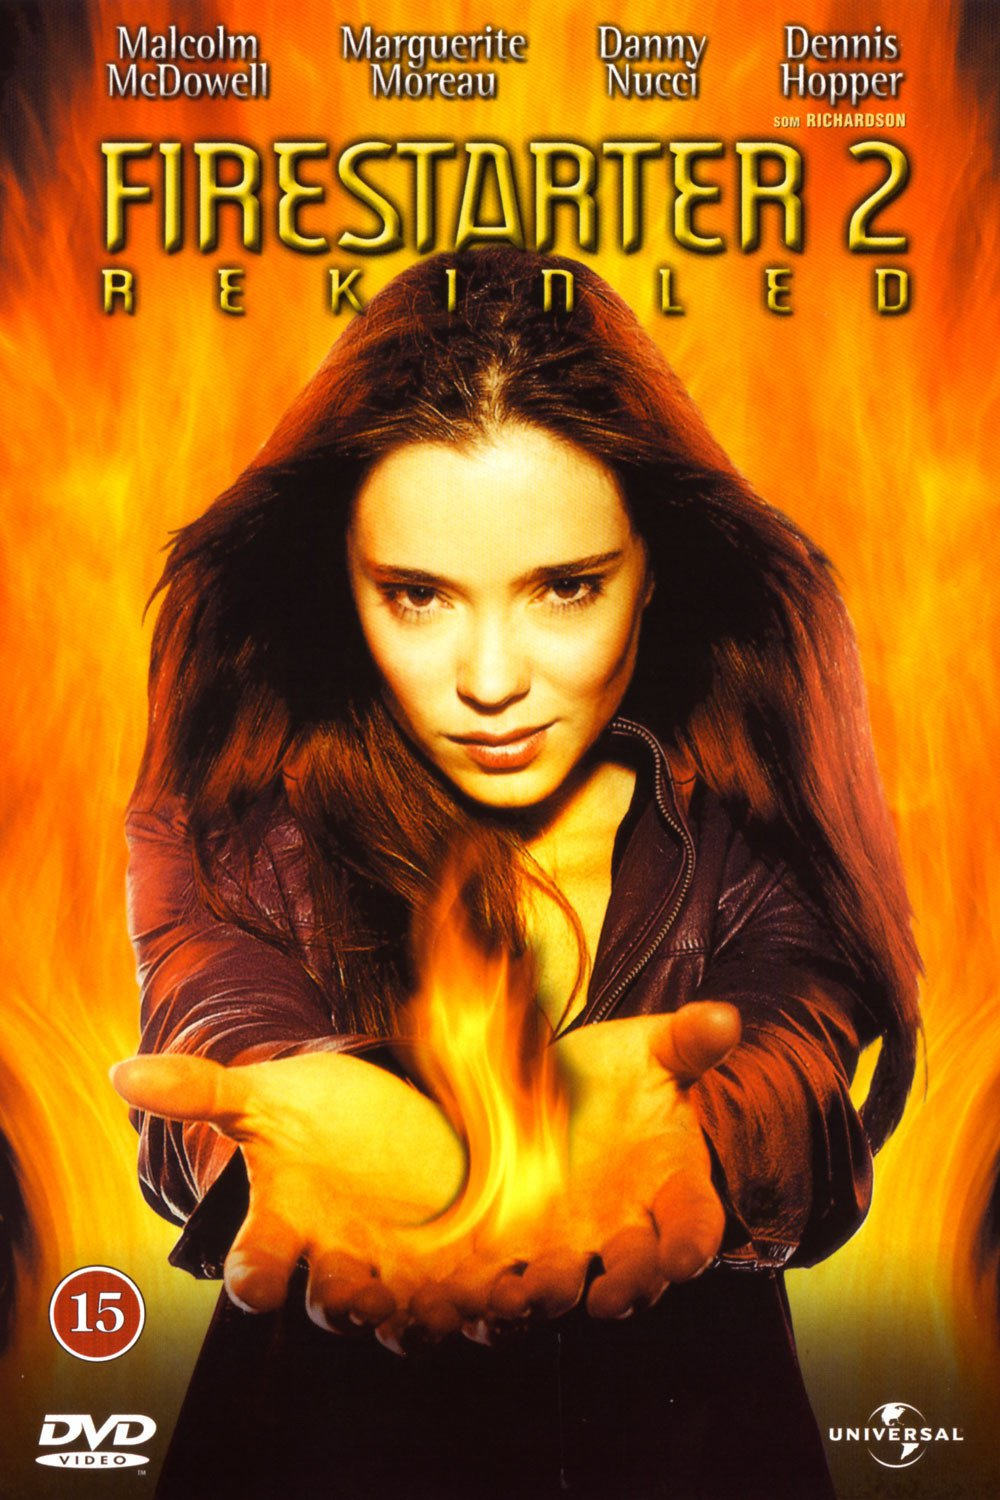 Firestarter 2 Rekindled (2002)